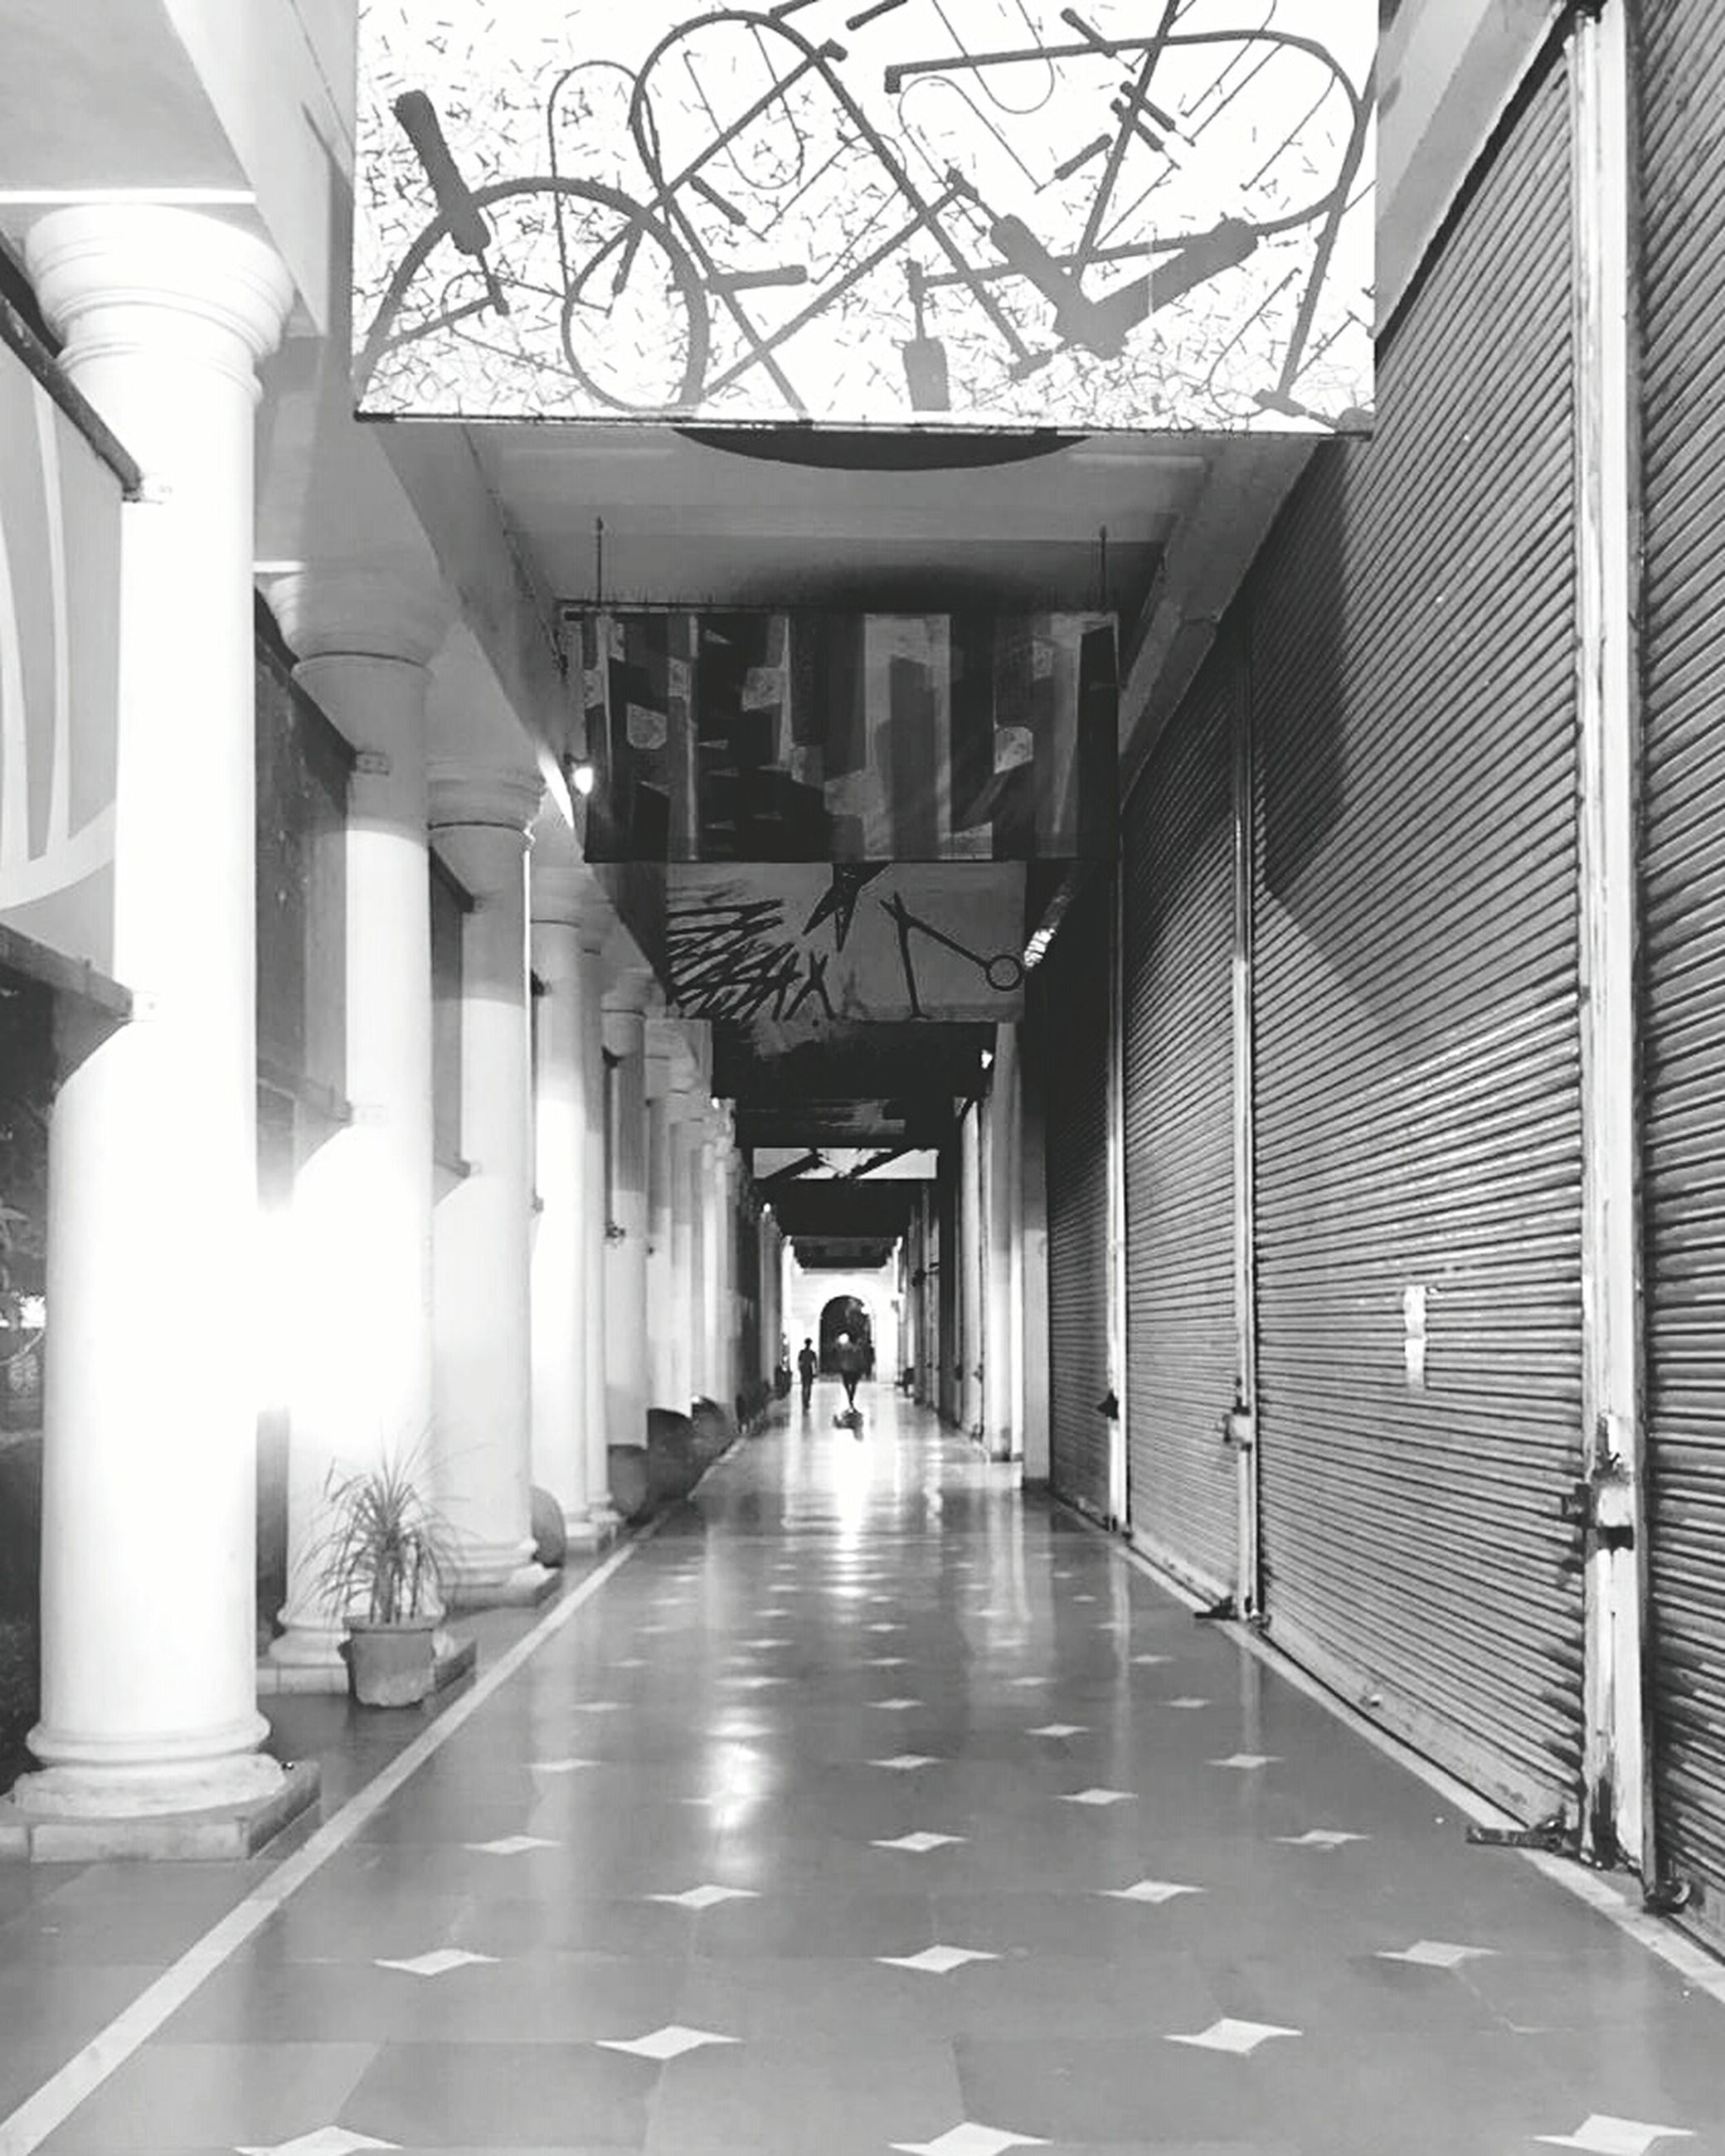 architecture, built structure, building, indoors, ceiling, the way forward, architectural column, direction, arcade, corridor, illuminated, flooring, real people, day, incidental people, empty, diminishing perspective, in a row, arch, footpath, tiled floor